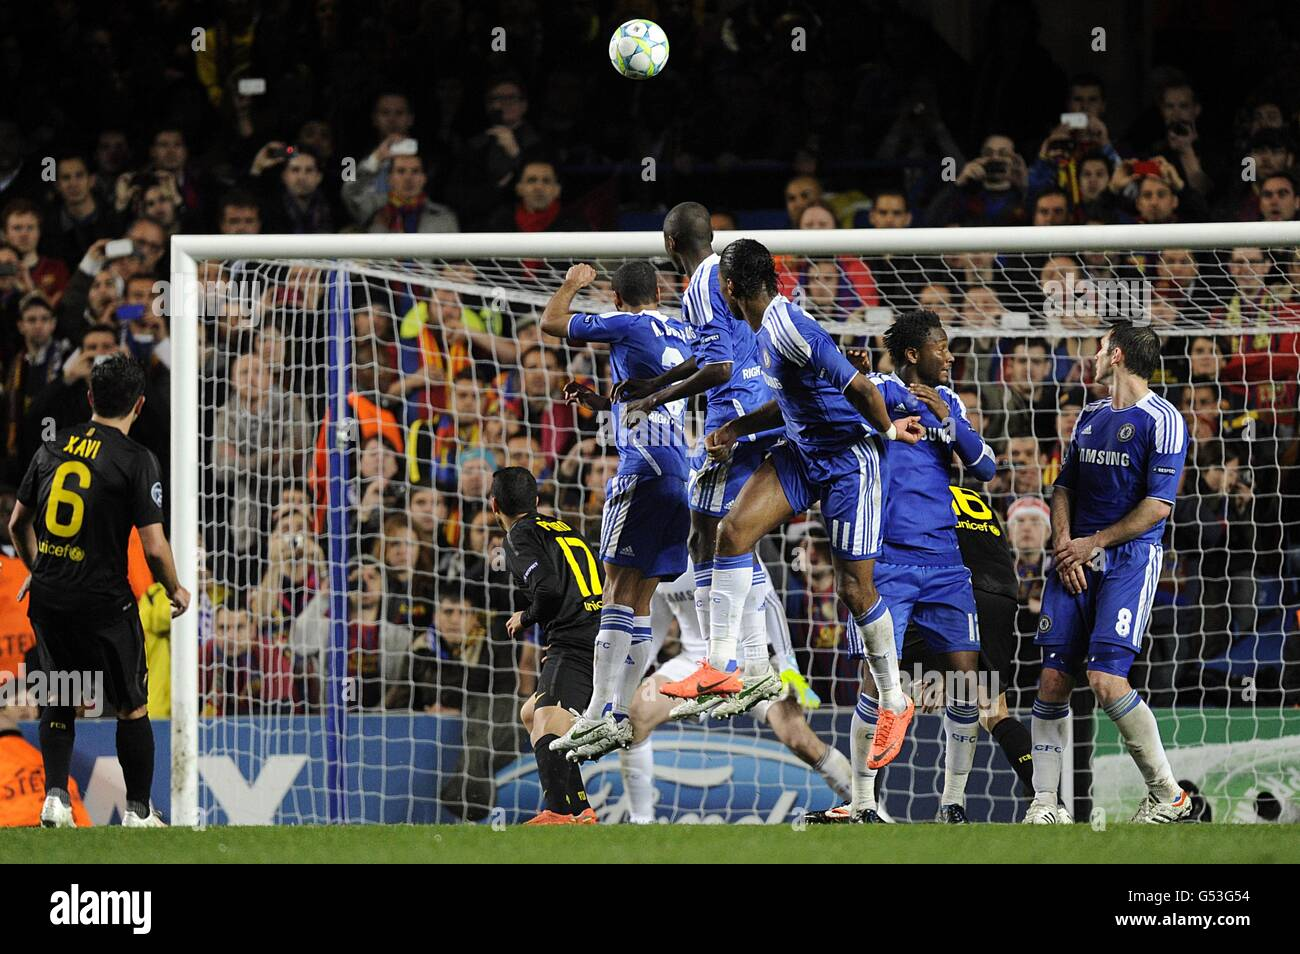 Soccer - UEFA Champions League - Semi Final - First Leg - Chelsea v Barcelona - Stamford Bridge - Stock Image